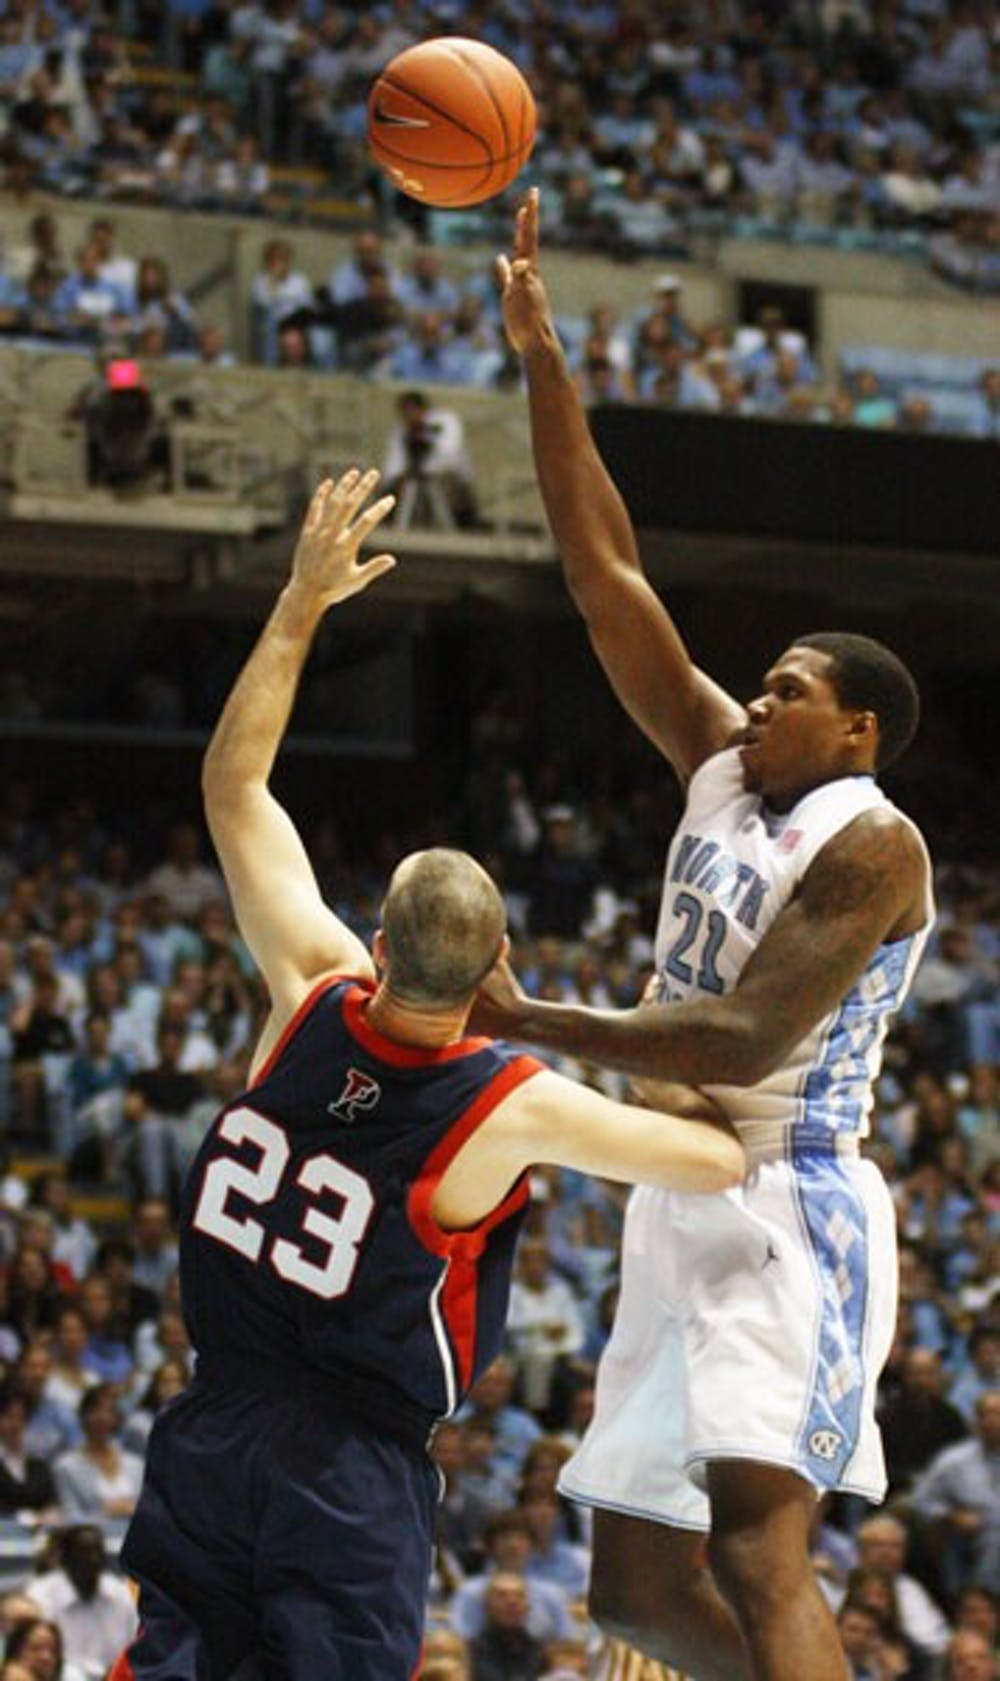 Senior Deon Thompson will help shoulder some of the scoring load left by departing forward Tyler Hansbrough. DTH File Photo